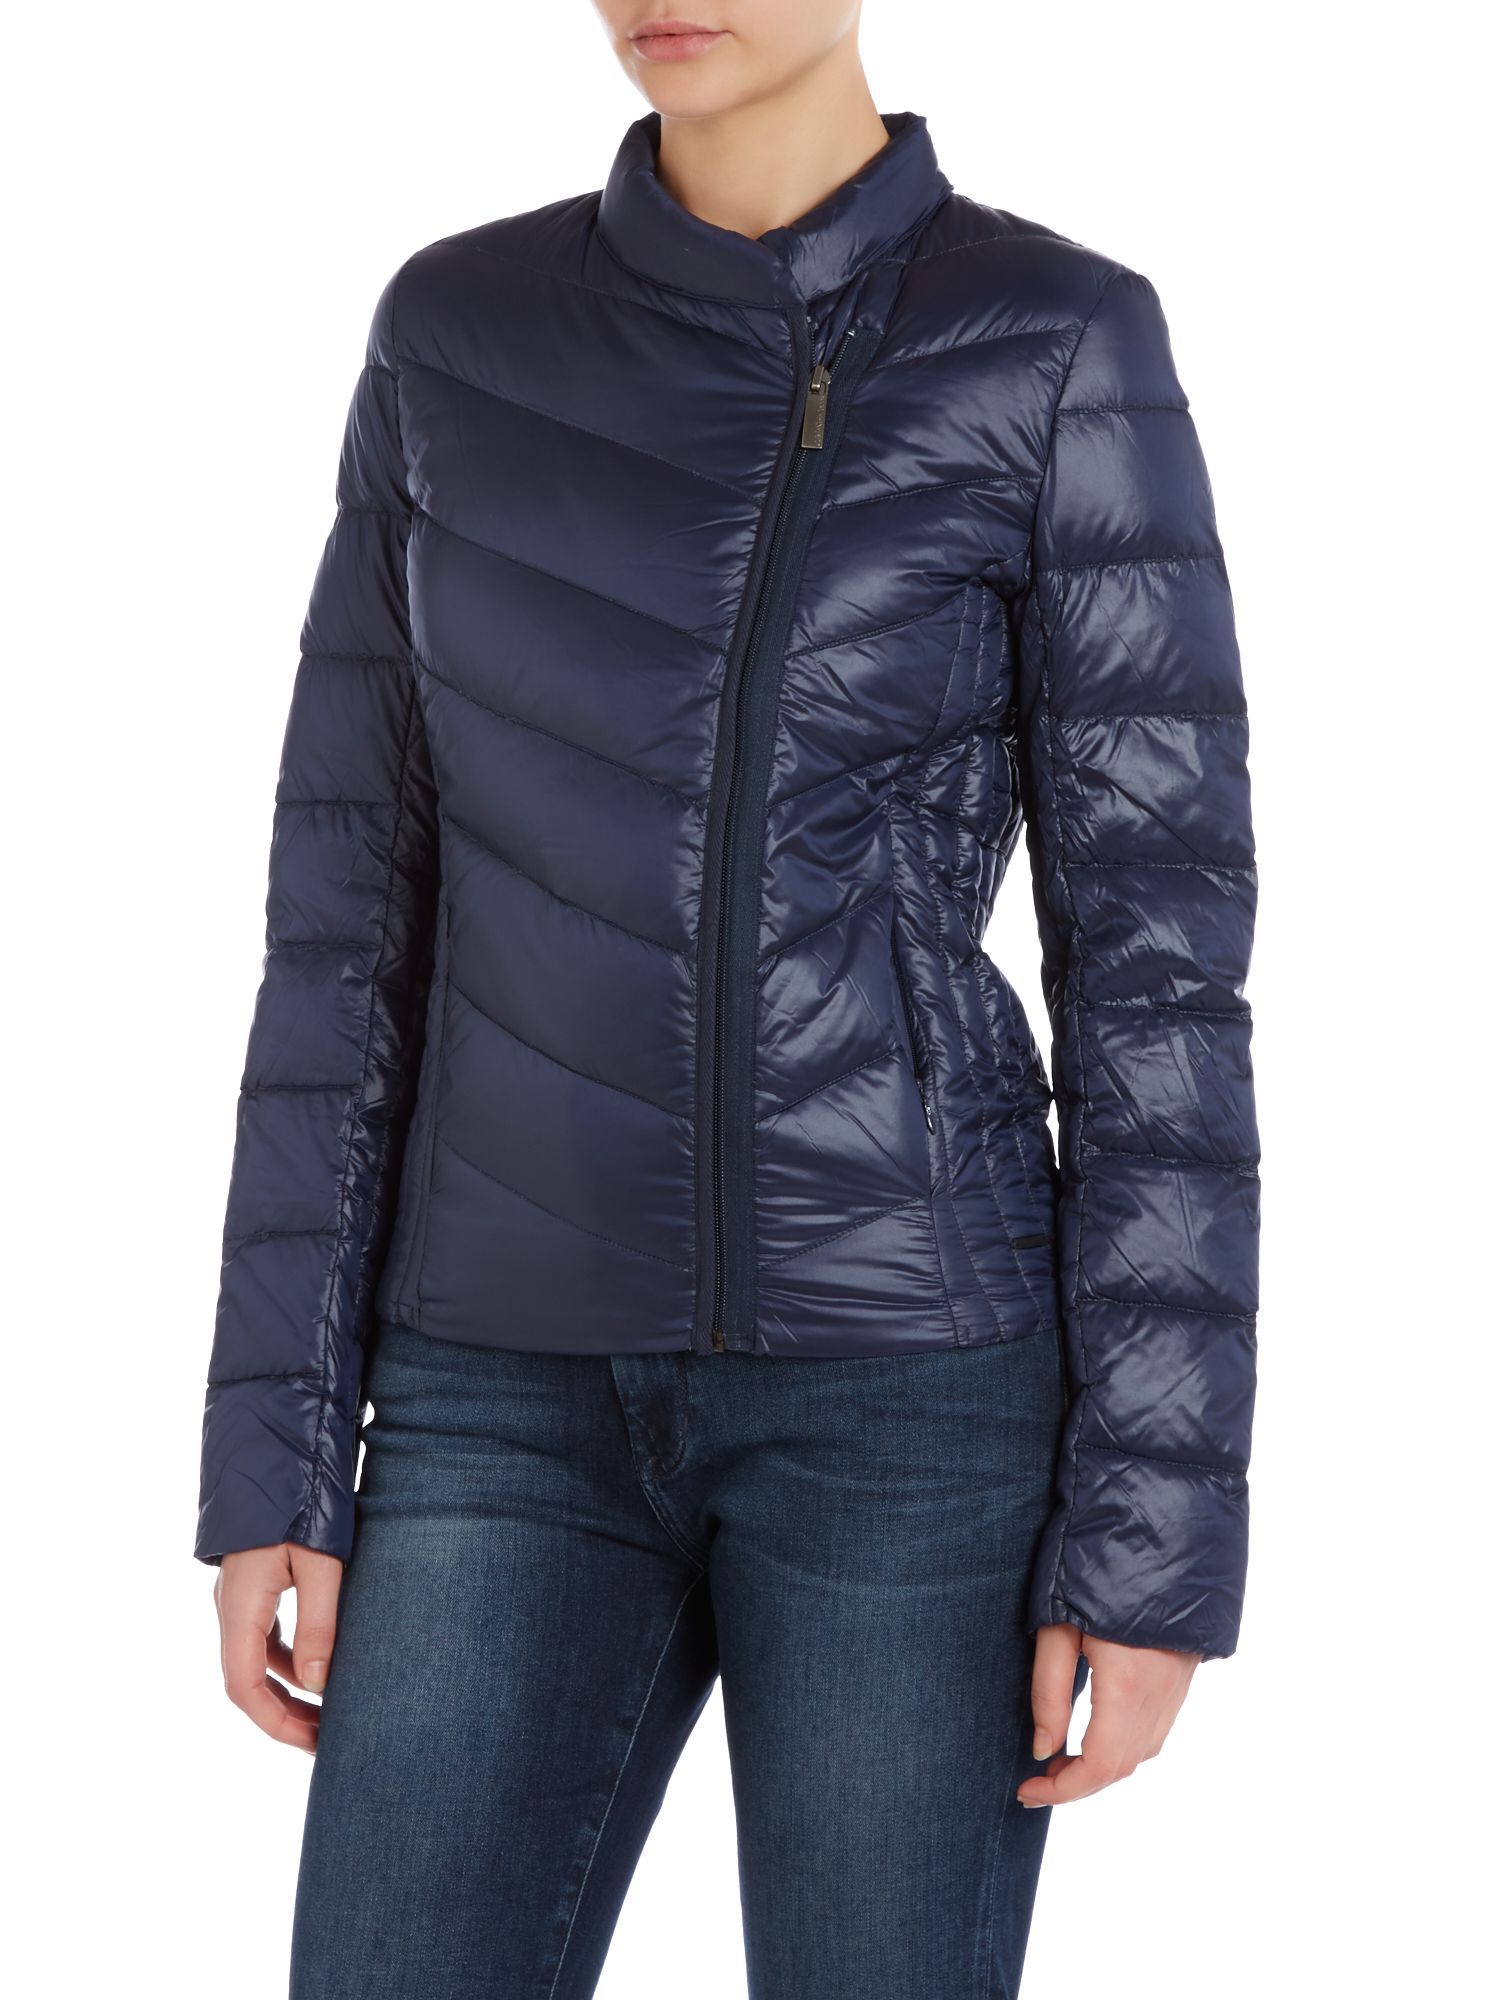 Obika coat with side front zip in night sky